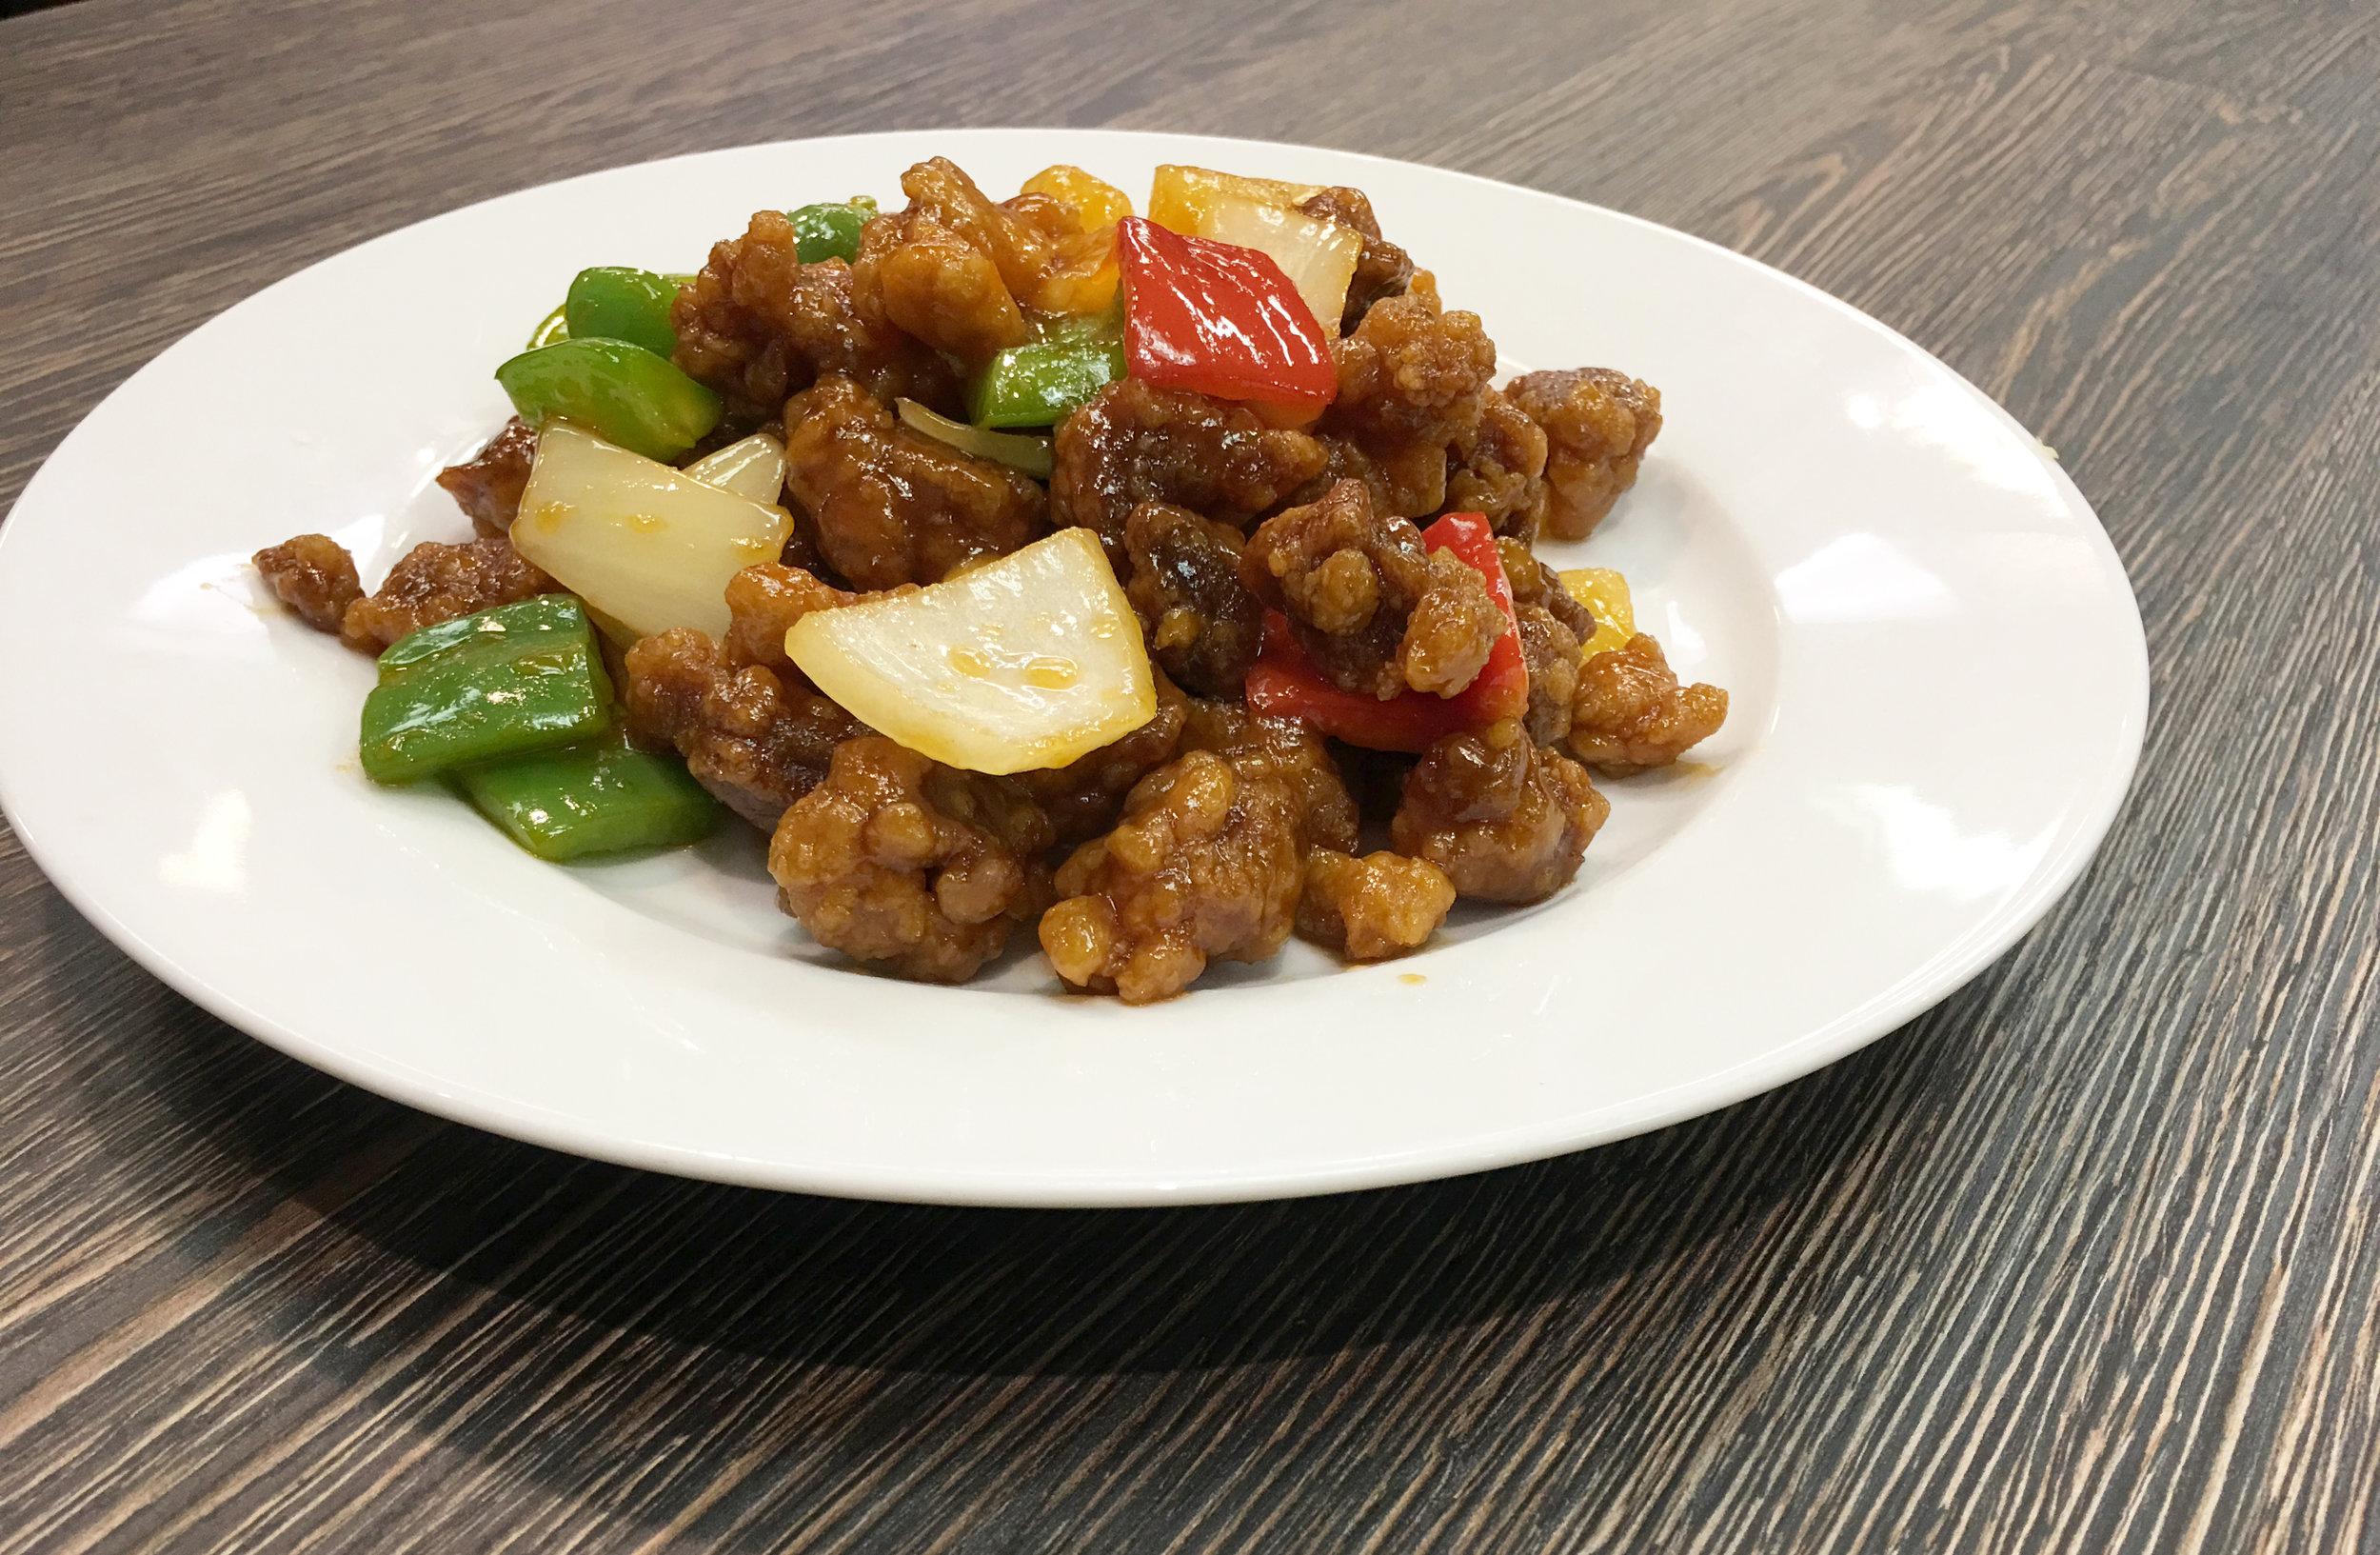 SWEET & SOUR FRIED PORK WITH PINEAPPLE | 菠蘿咕嚕肉